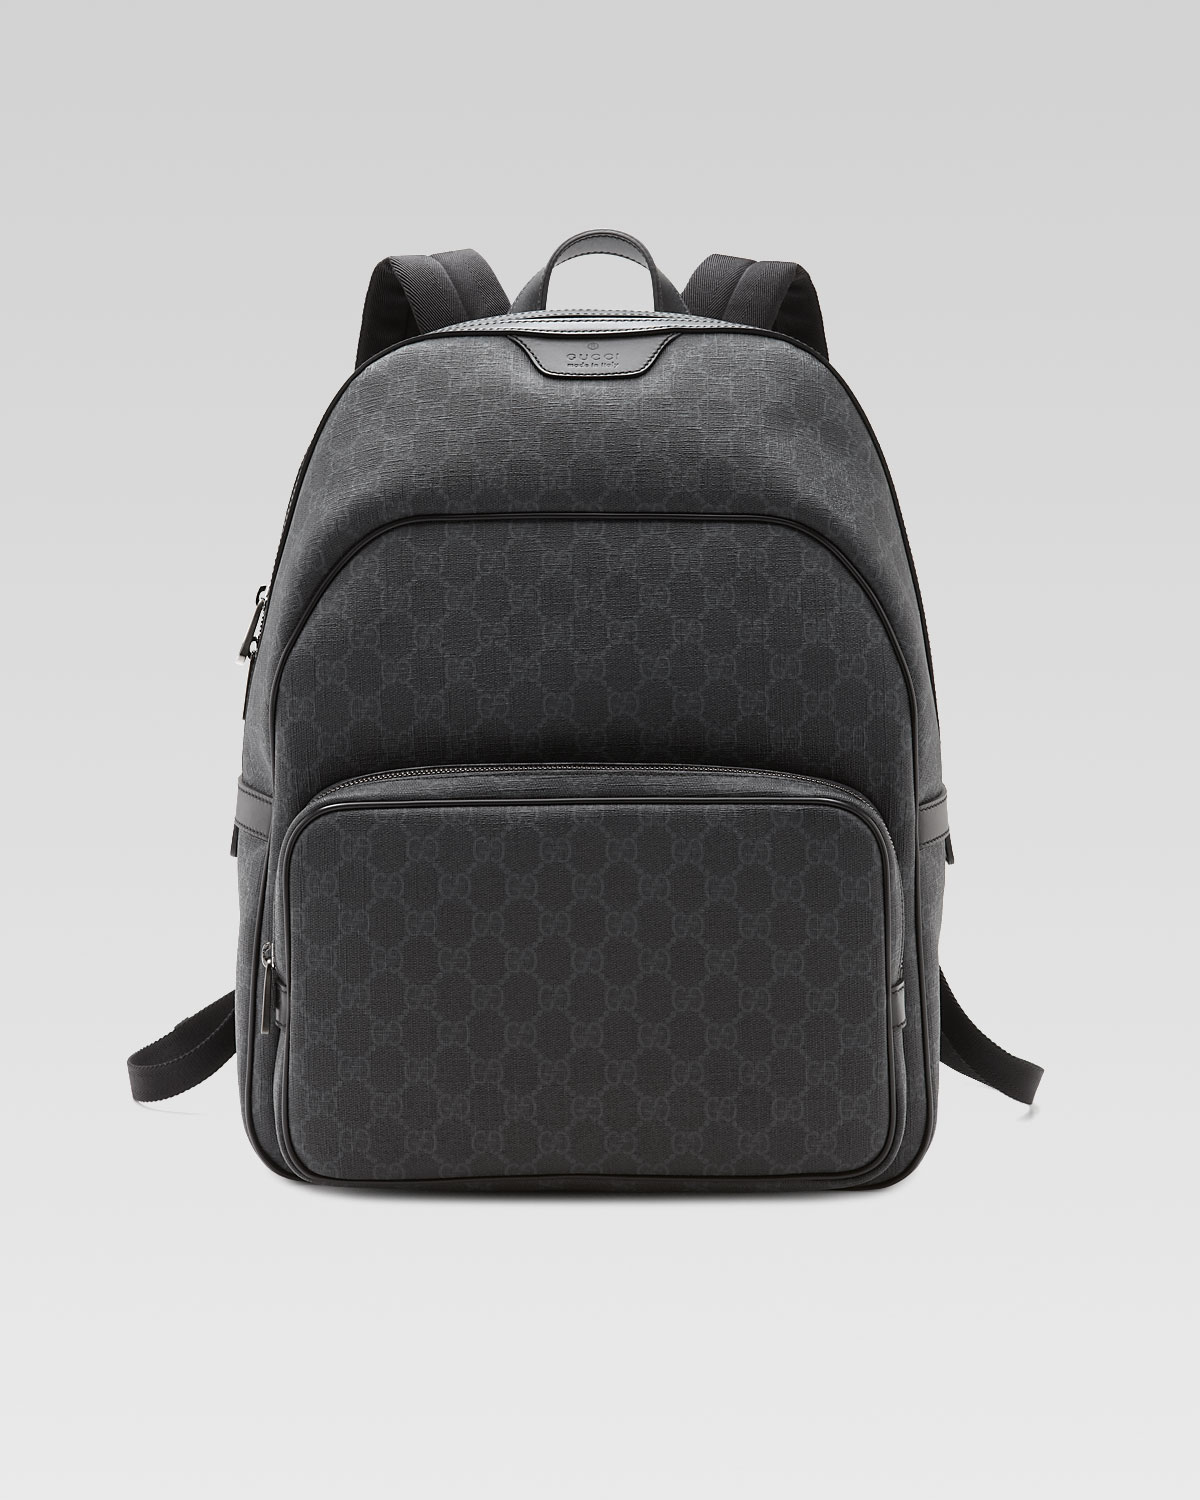 f0998819a3a0 Gucci GG Supreme Canvas Backpack